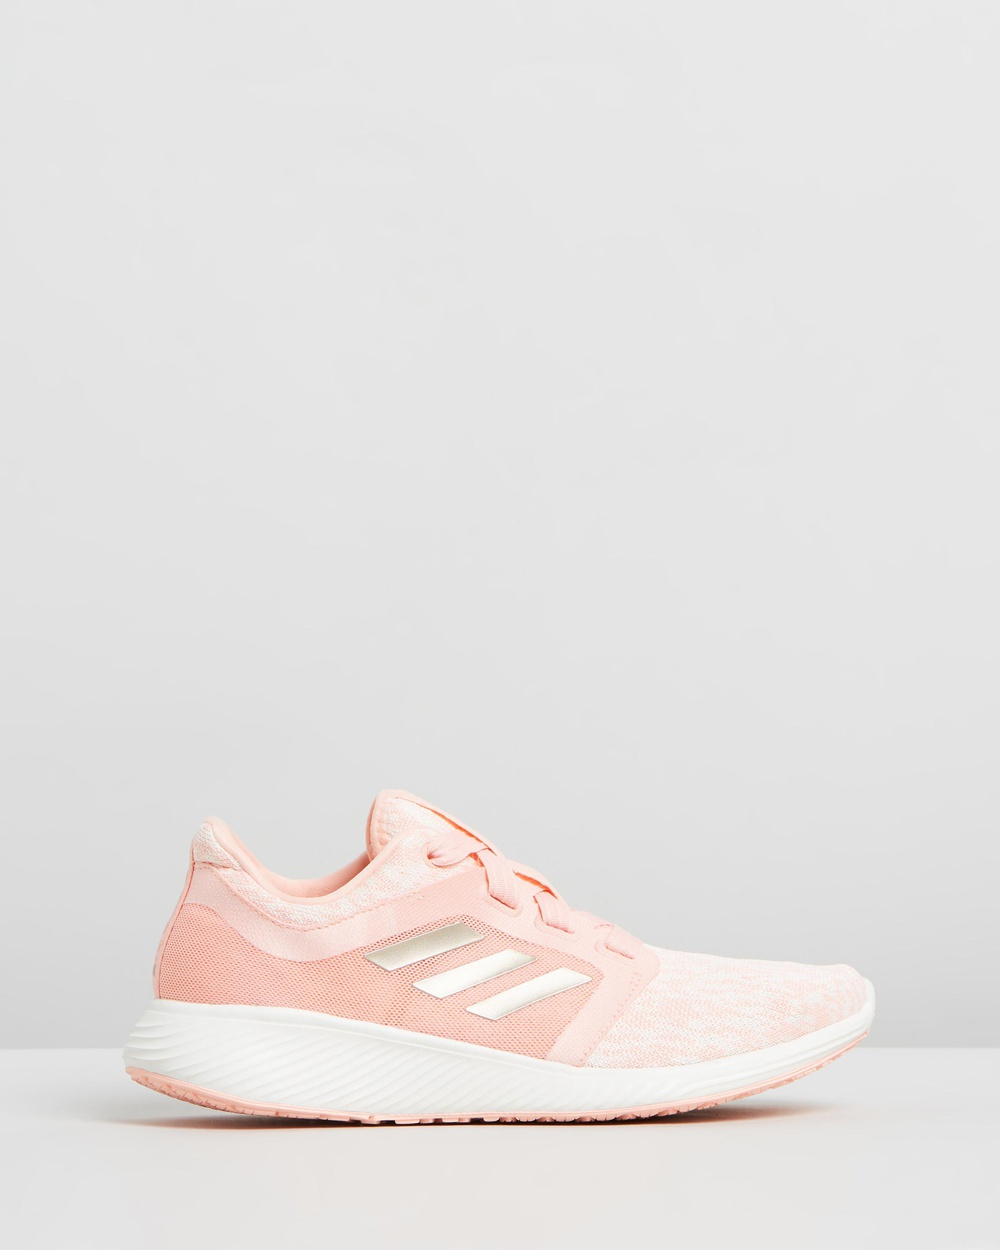 Sastre cosecha Manual  adidas Performance - Edge Lux 3 Women's - Performance Shoes (Glow Pink, Cyber  Metallic & Off White) Edge Lux 3 - Women's - The Vegan Company